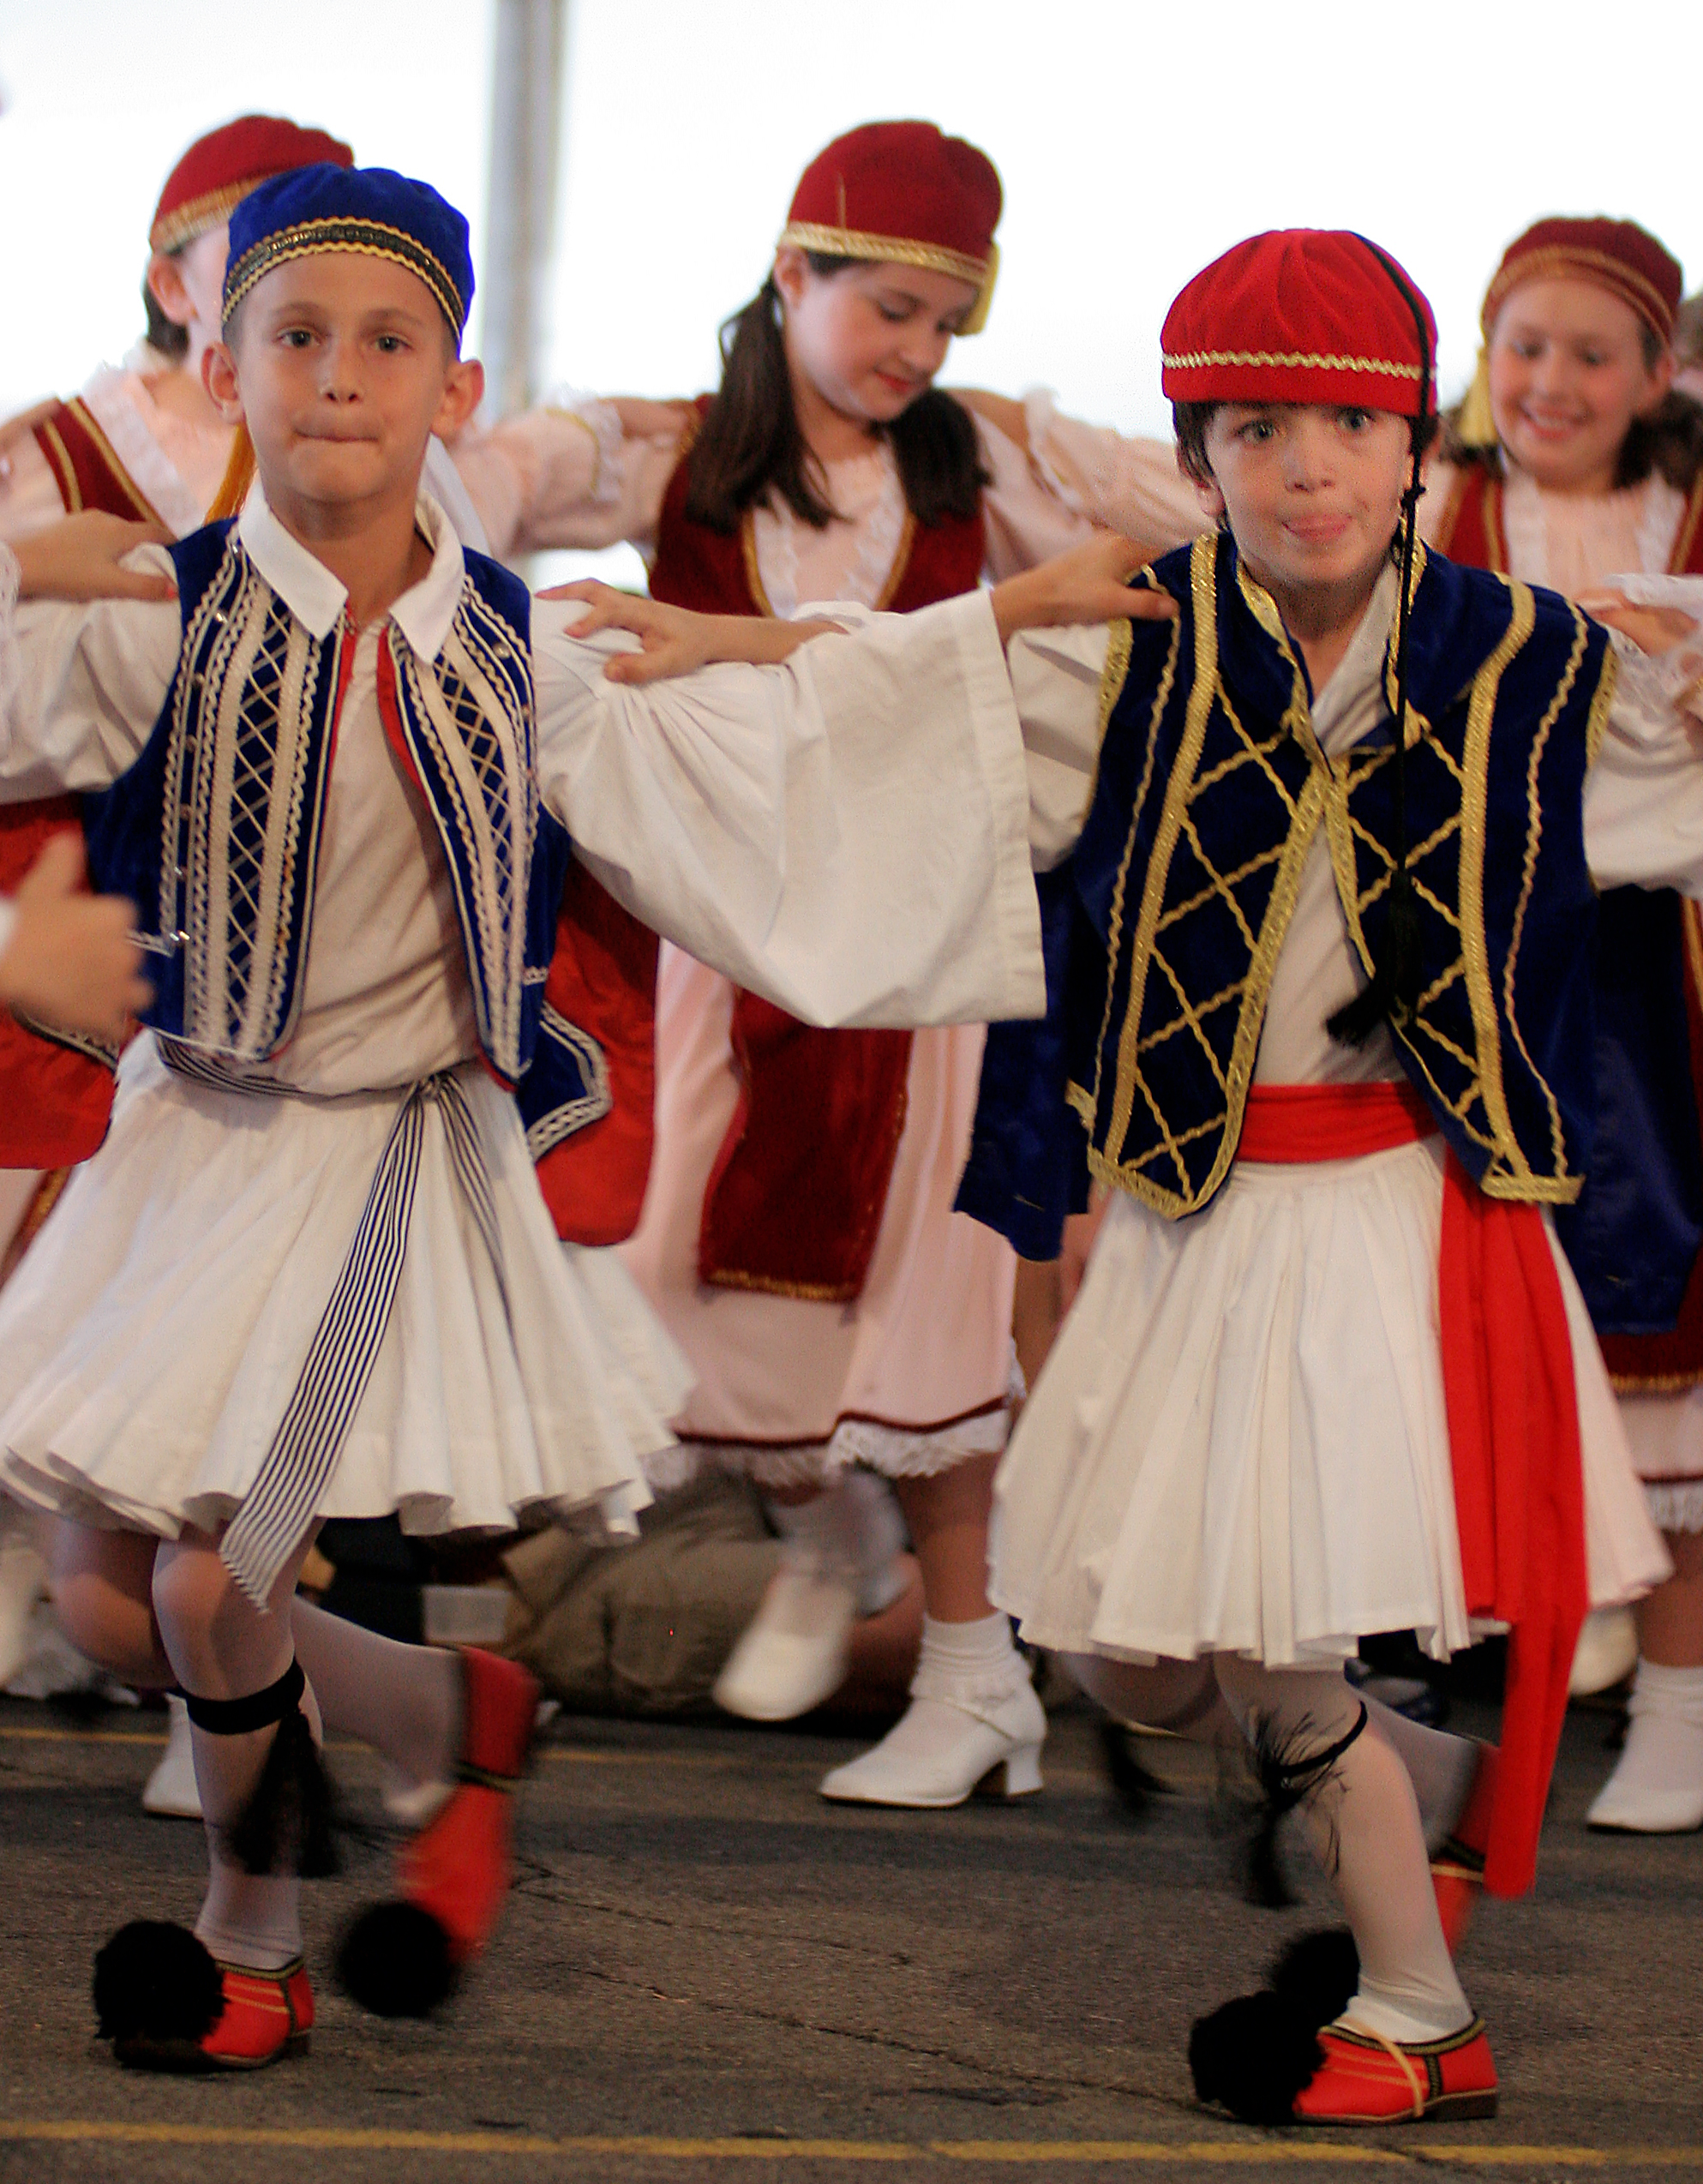 Greek kids dancing clipart clipart royalty free download Greek kids dancing clipart - ClipartFest clipart royalty free download